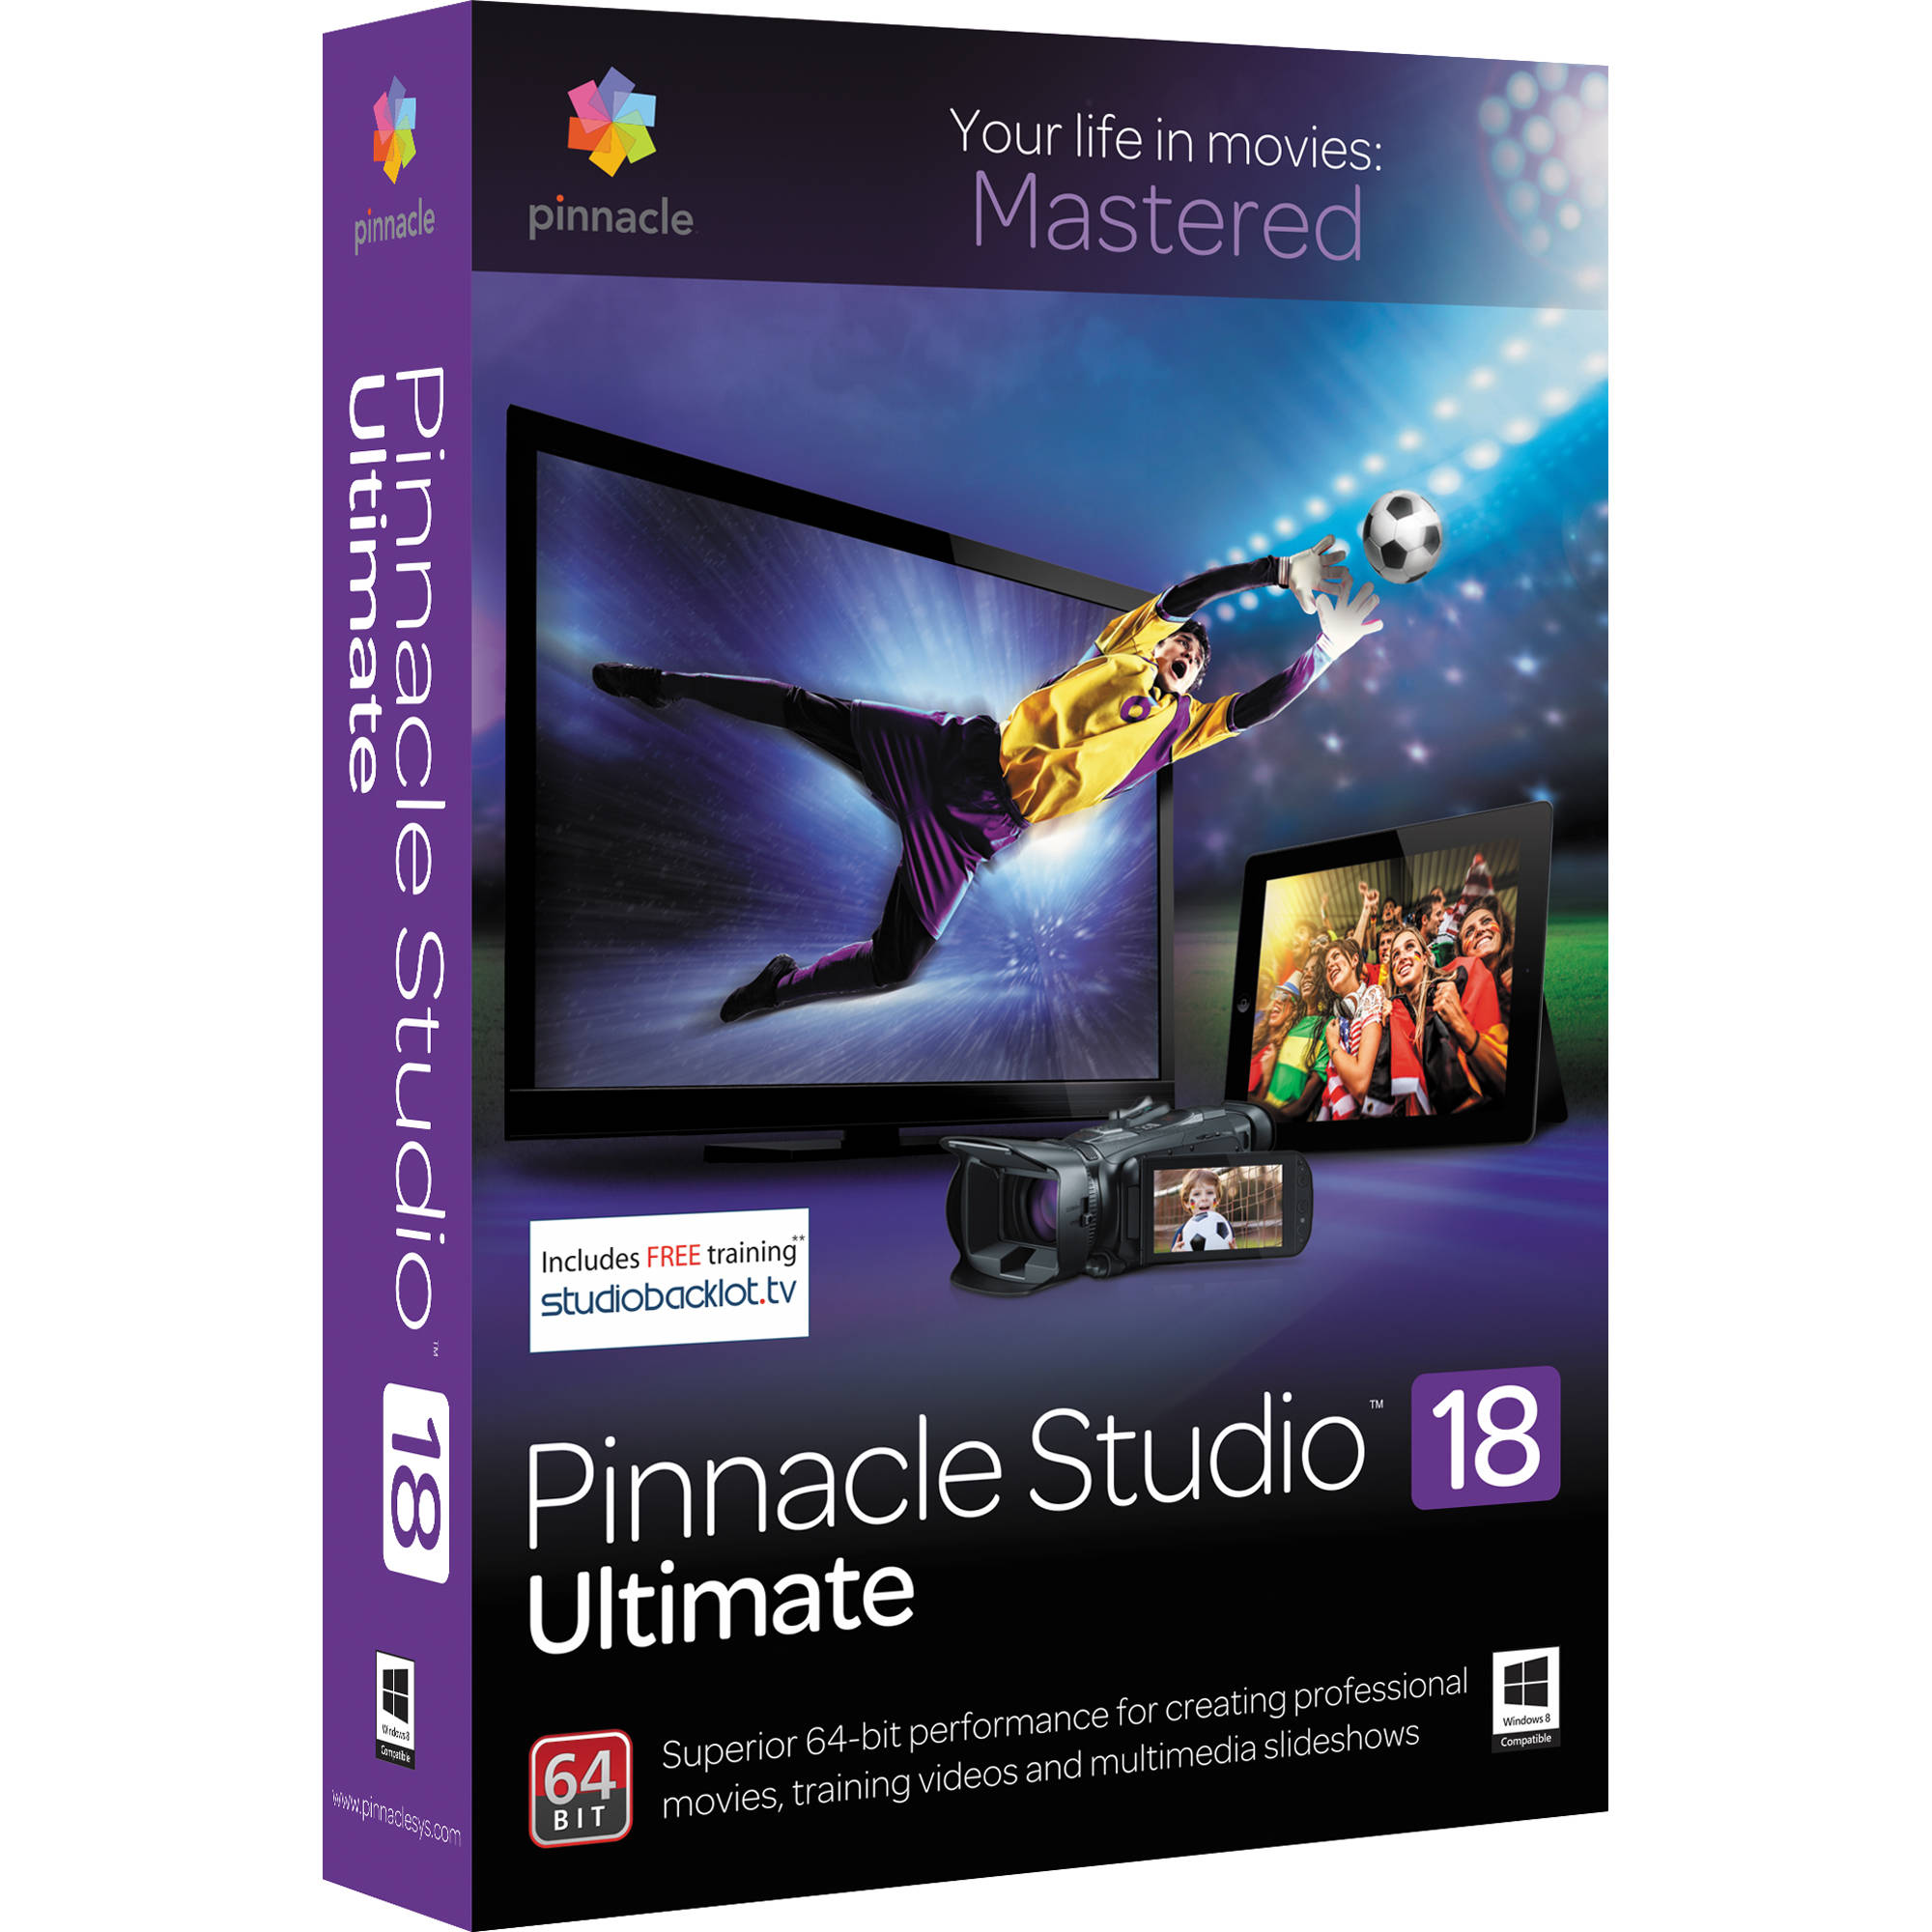 pinnacle chat Every instance comes complete with up-selling features like recommended products, drift-marketing, related product and more in fact, everything we build into pinnaclecart is designed to increase visitors, sales and average sale amount.